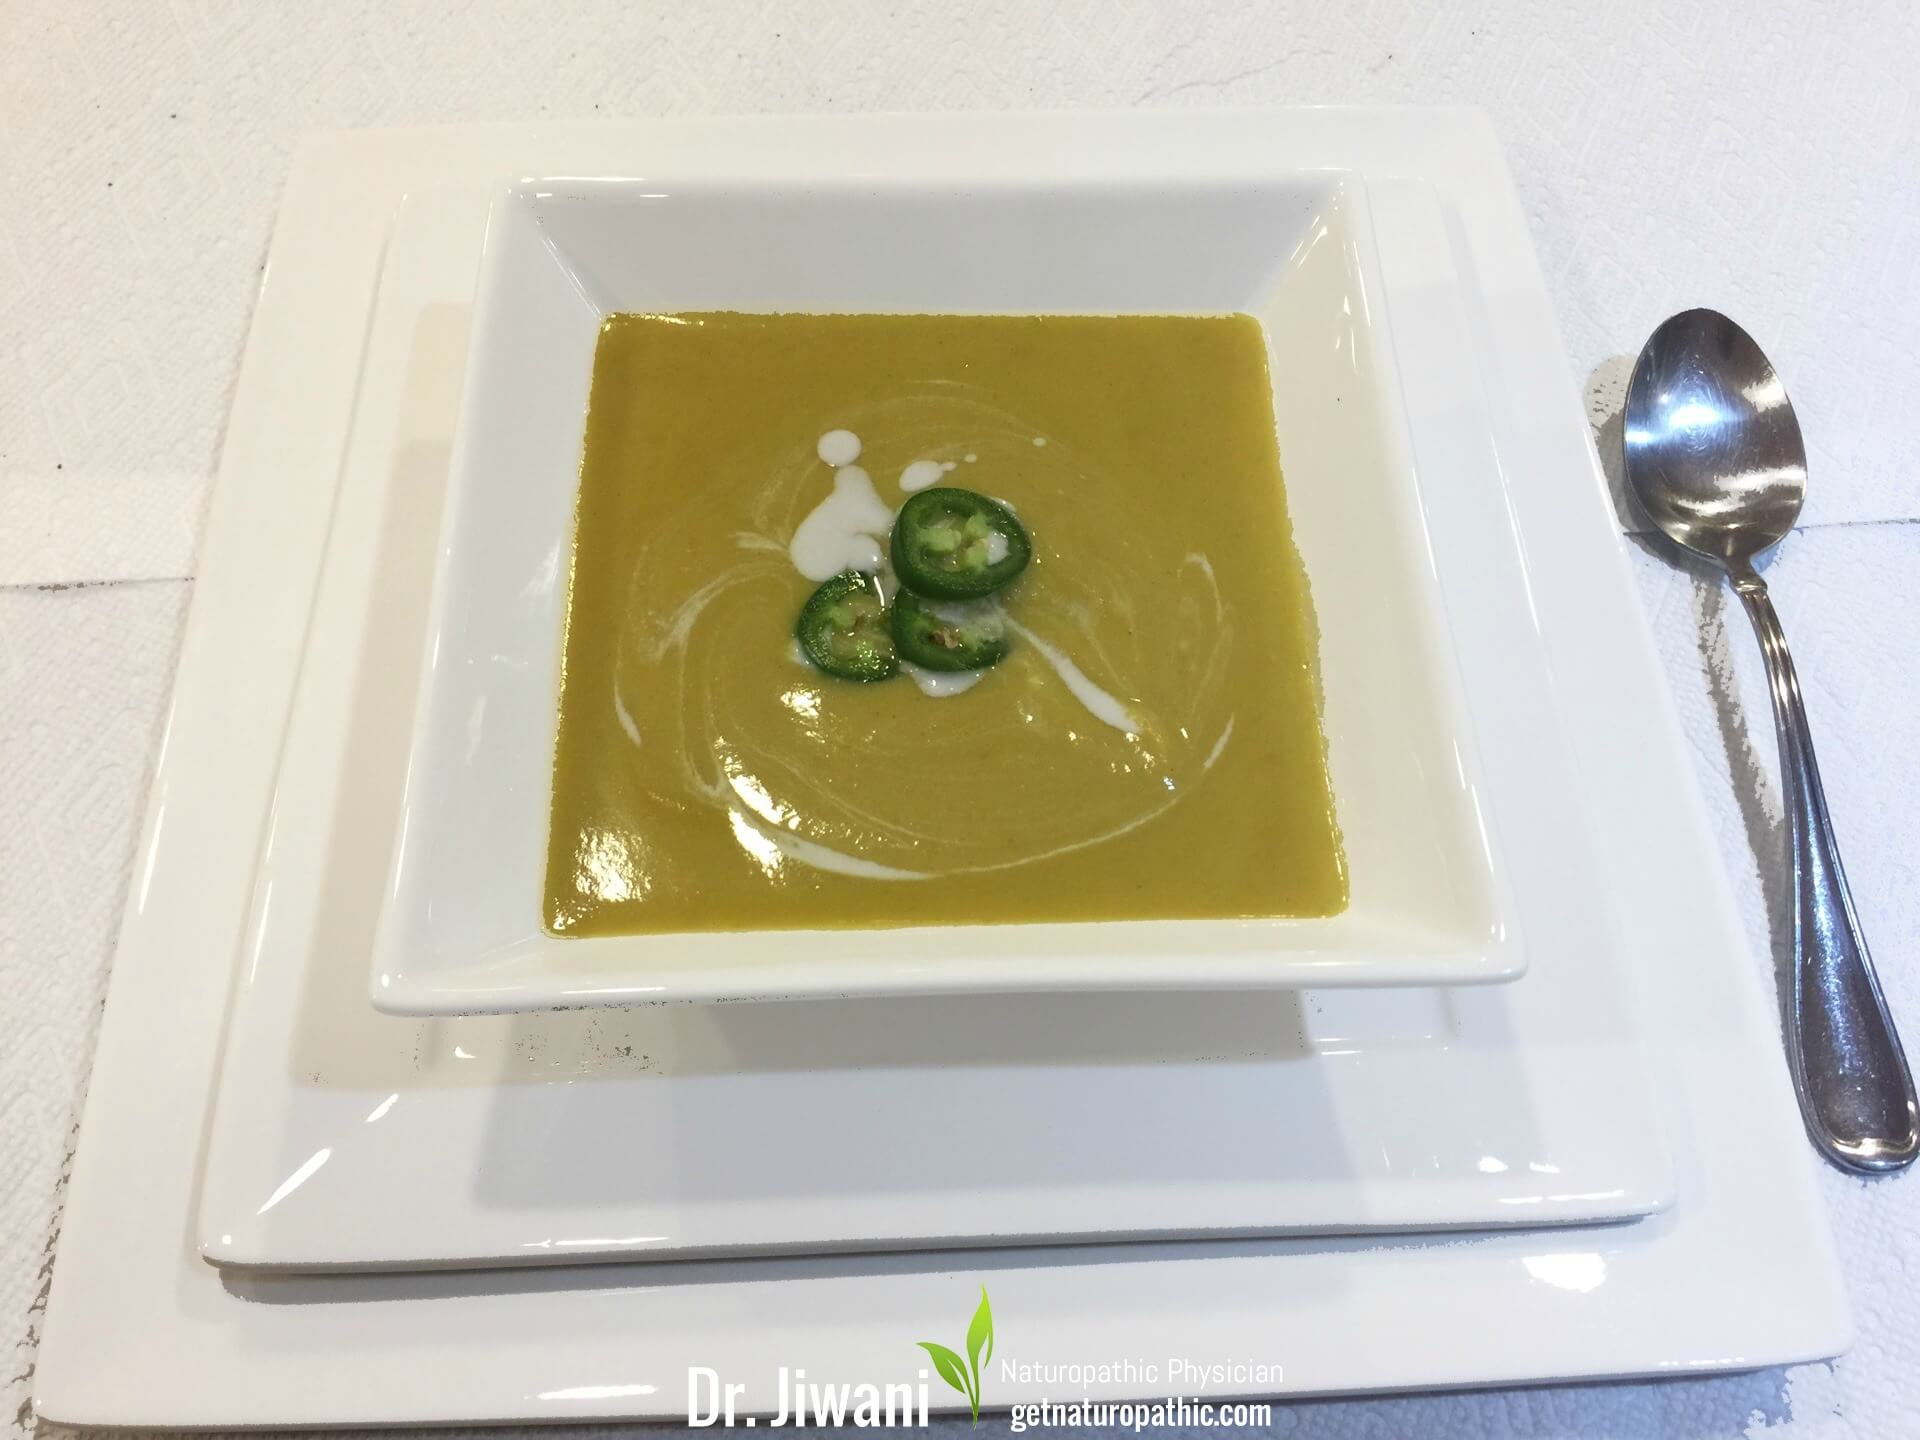 Dr. Jiwani's Butternut Squash Soup is Flavourful, Low Carb, Gluten-Free, Egg-Free, Dairy-Free, Soy-Free, Corn-Free, Ideal For Paleo, Keto, Vegan & Allergy-Free Diets   Dr. Jiwani's Naturopathic Nuggets